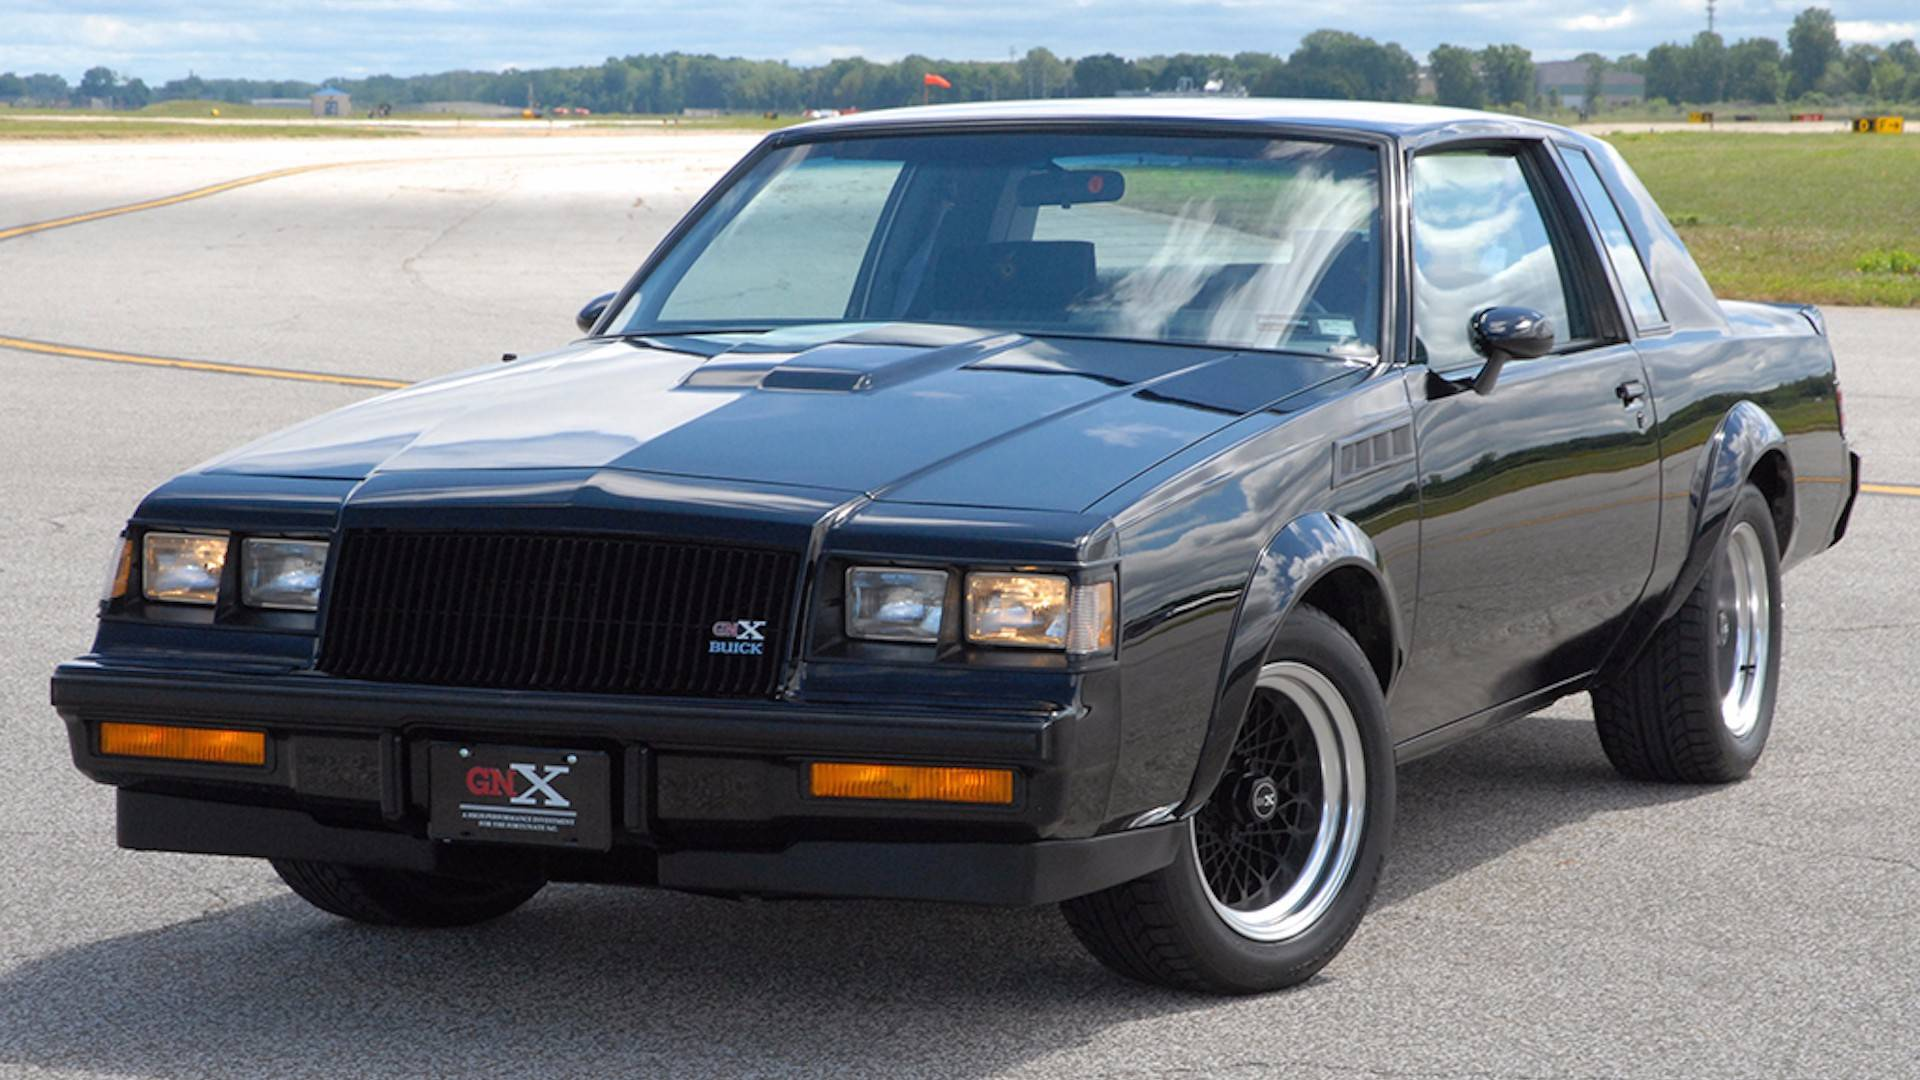 sale daily blog of find car for the cup stock hemmings buick regal day winston